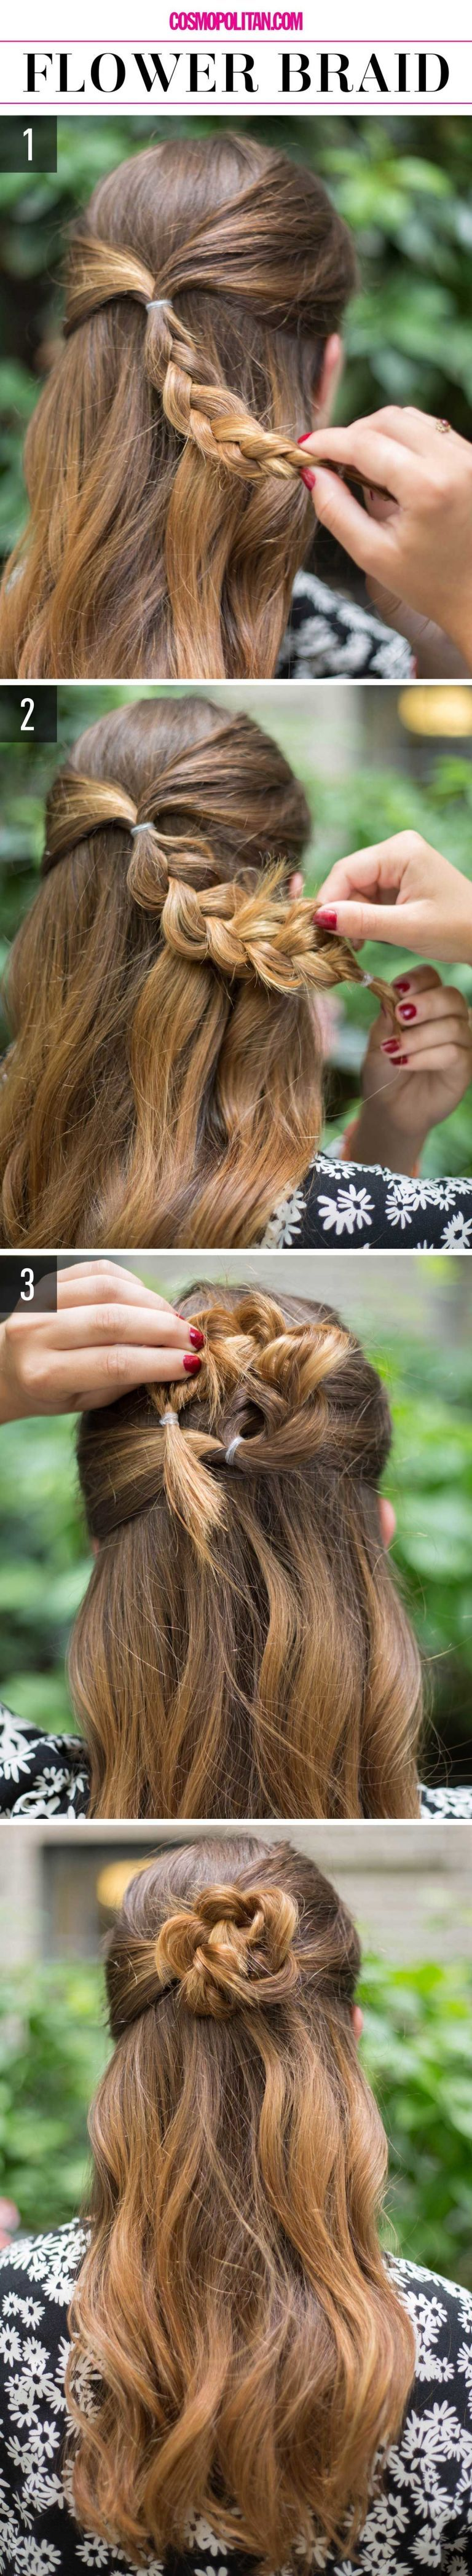 supereasy hairstyles for lazy girls who canut even beauty